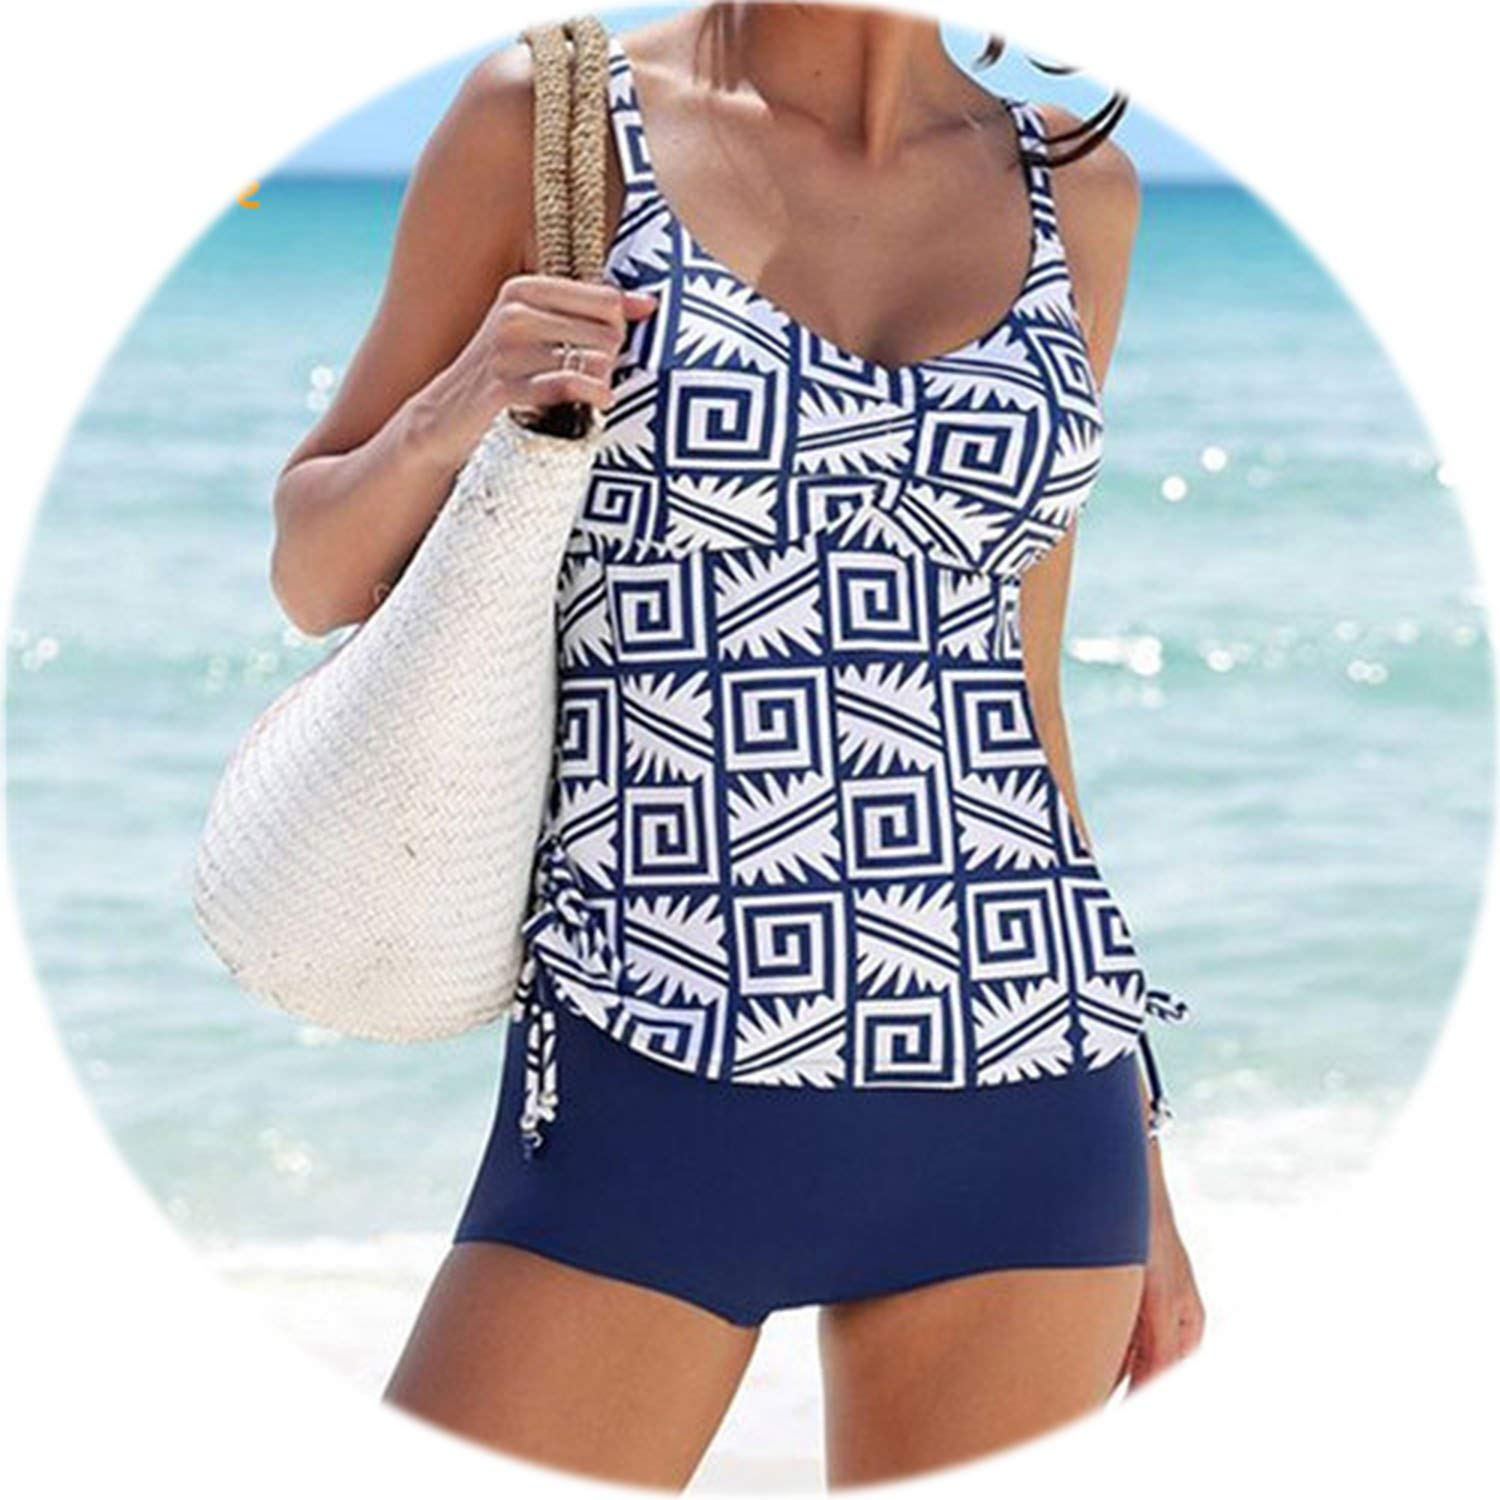 5f4ff9d50e555 Amazon.com: 2019 New Tankini Swimsuits Women Swimsuit High Waisted Bathing  Suits Vintage Retro Swimwear Beachwear XL,Print,L: Clothing